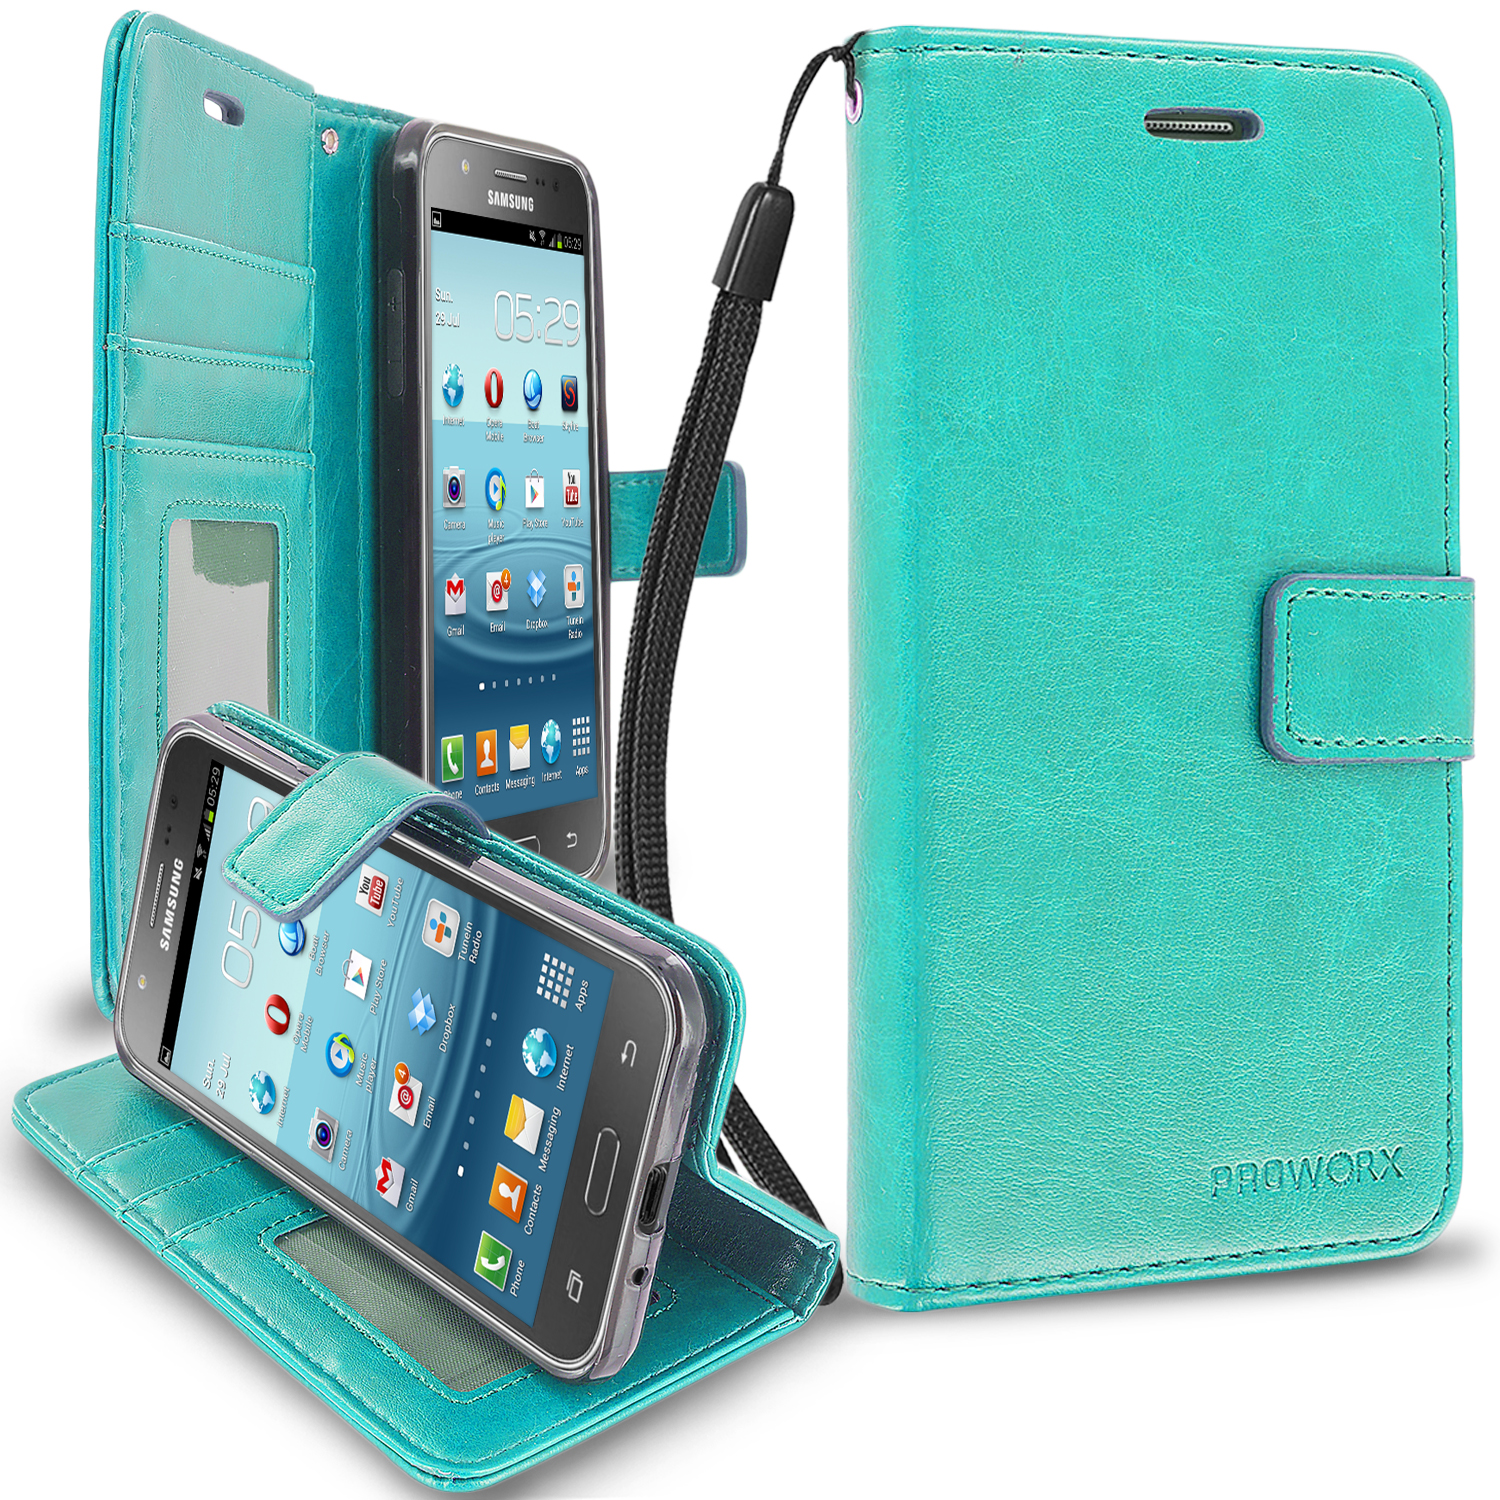 Samsung Galaxy J3 Mint Green ProWorx Wallet Case Luxury PU Leather Case Cover With Card Slots & Stand